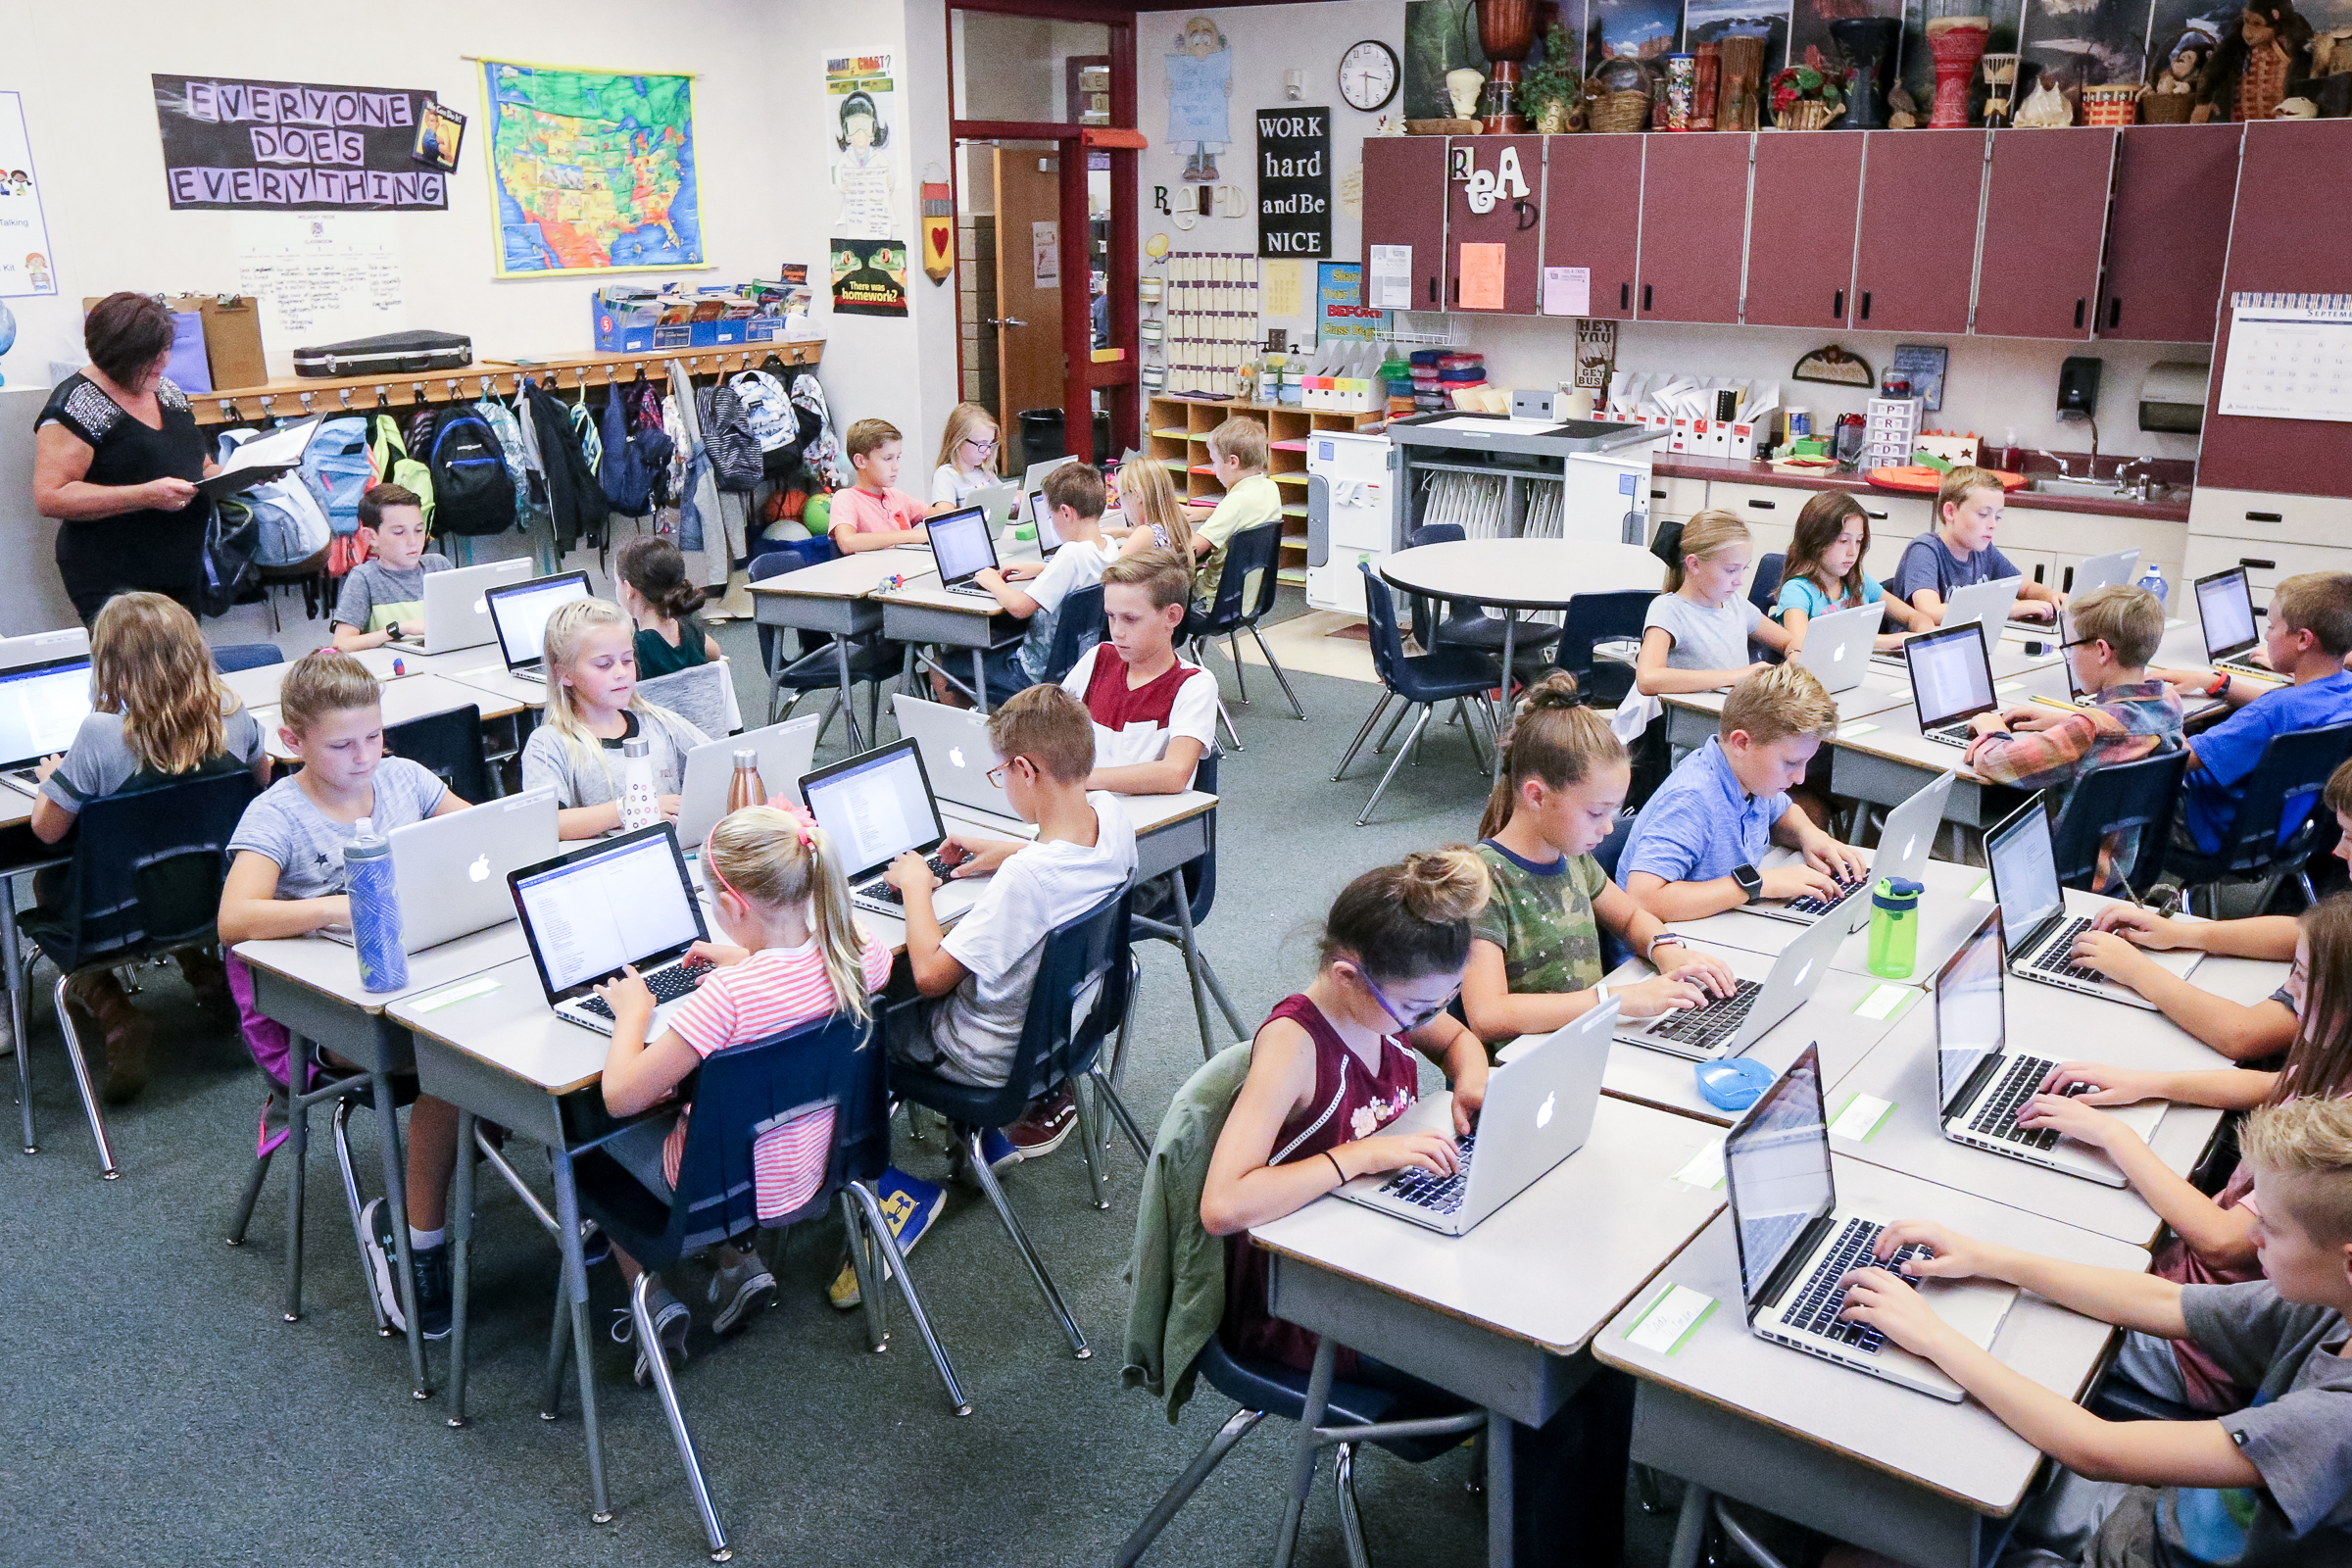 Lyn Wright's class at Willow Springs Elementary in Draper on Monday, Sept. 11, 2017.